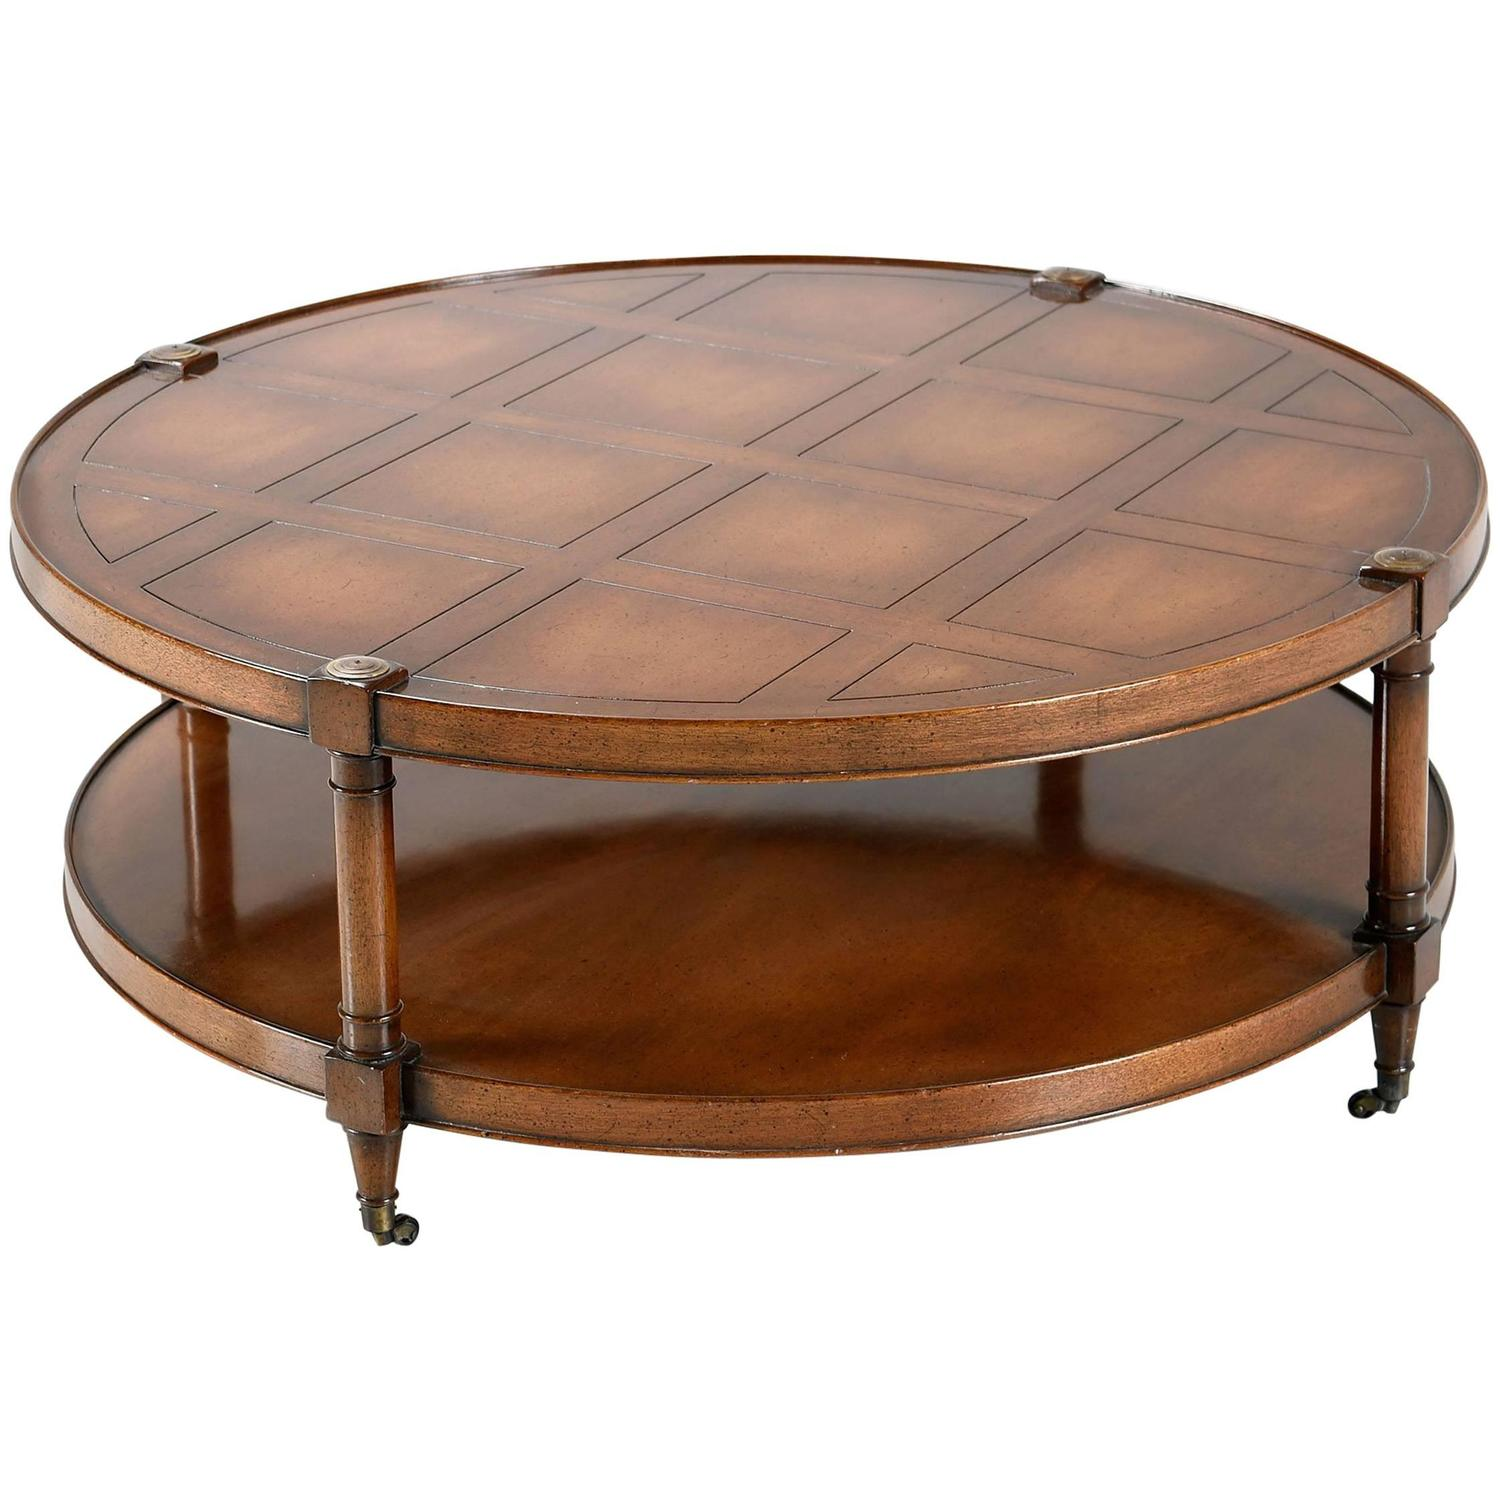 Mahogany Campaign Style Box Stand Coffee Table at 1stdibs